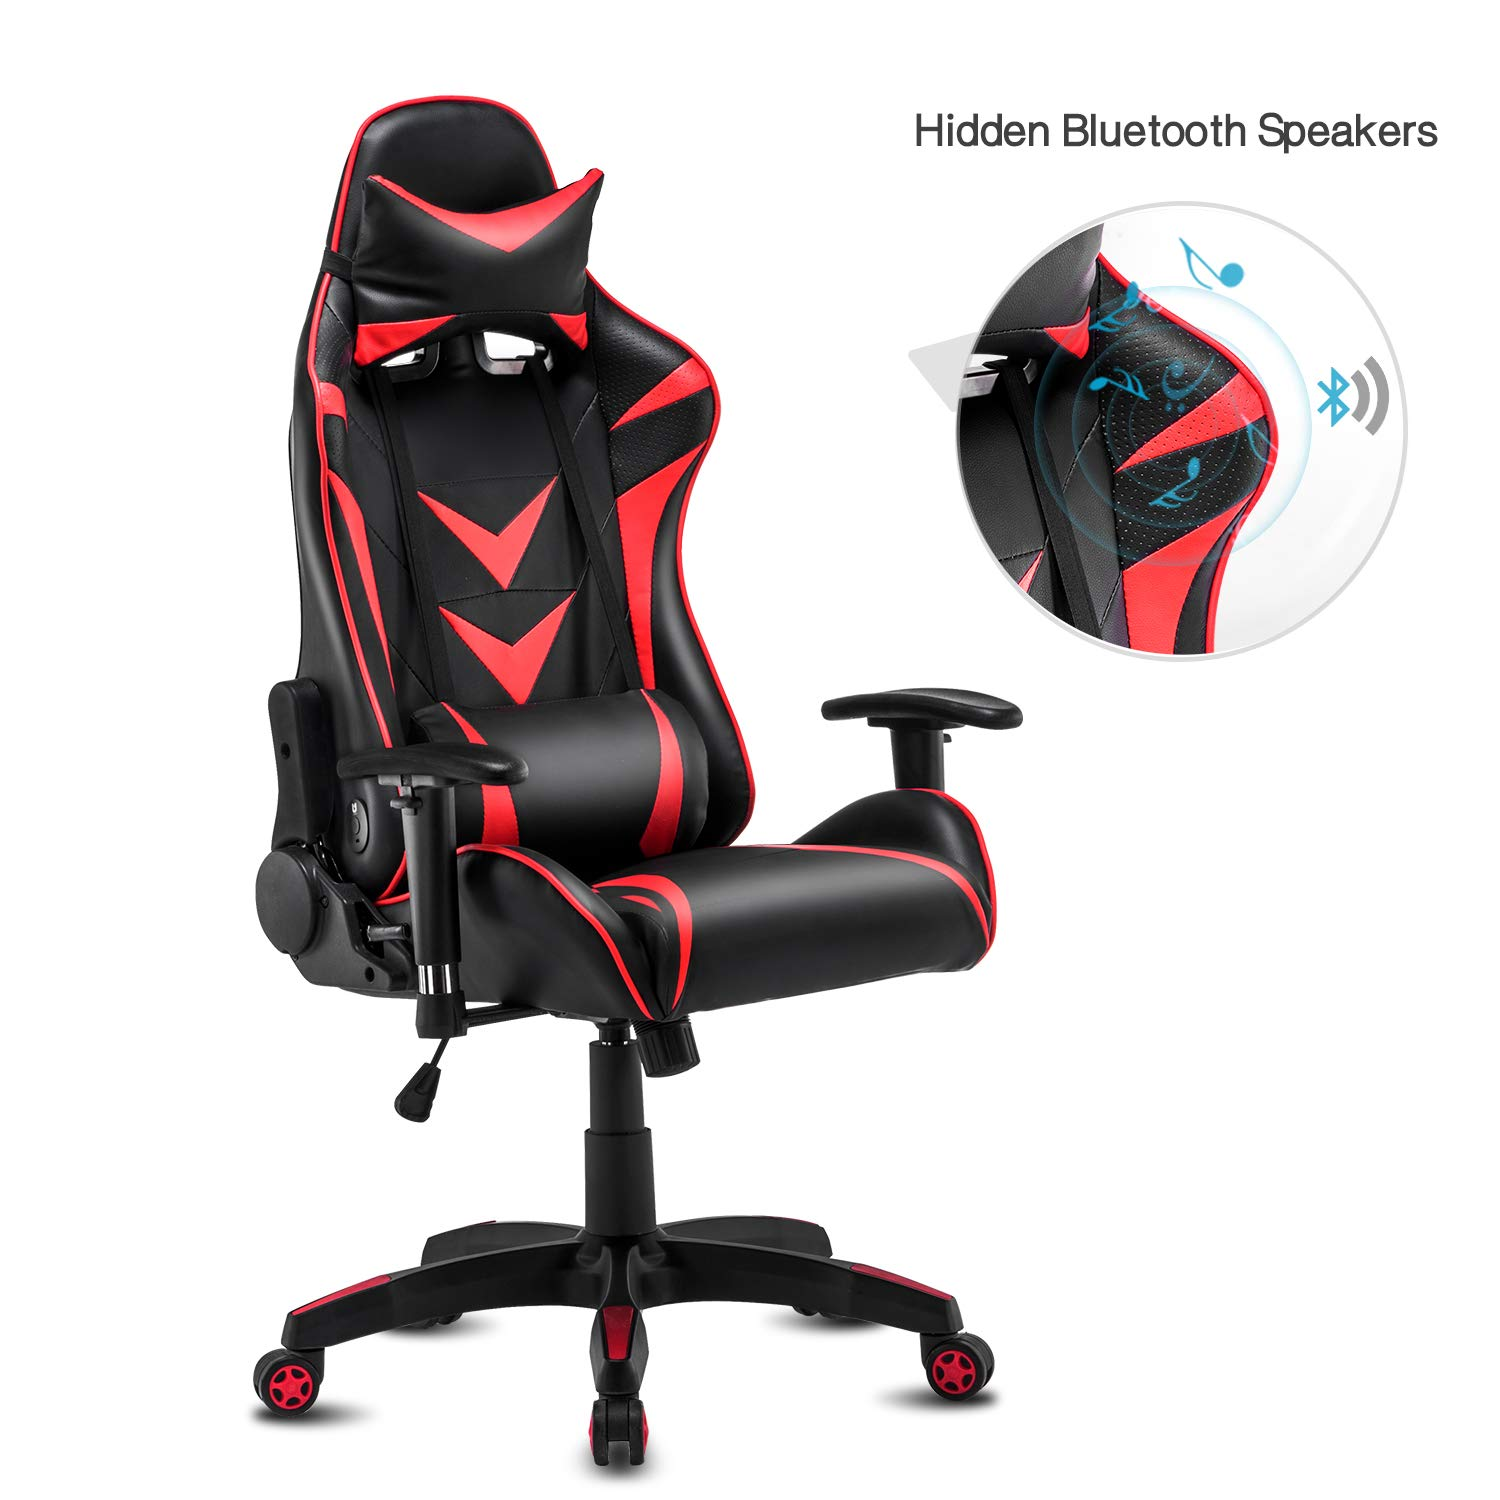 High-Back Swivel Gaming Chair Recliner with Bluetooth 4.1 Speakers & Lumbar Support & Headrest | Height Adjustable Ergonomic Office Desk Chair - Black & Red by Modern-Depo